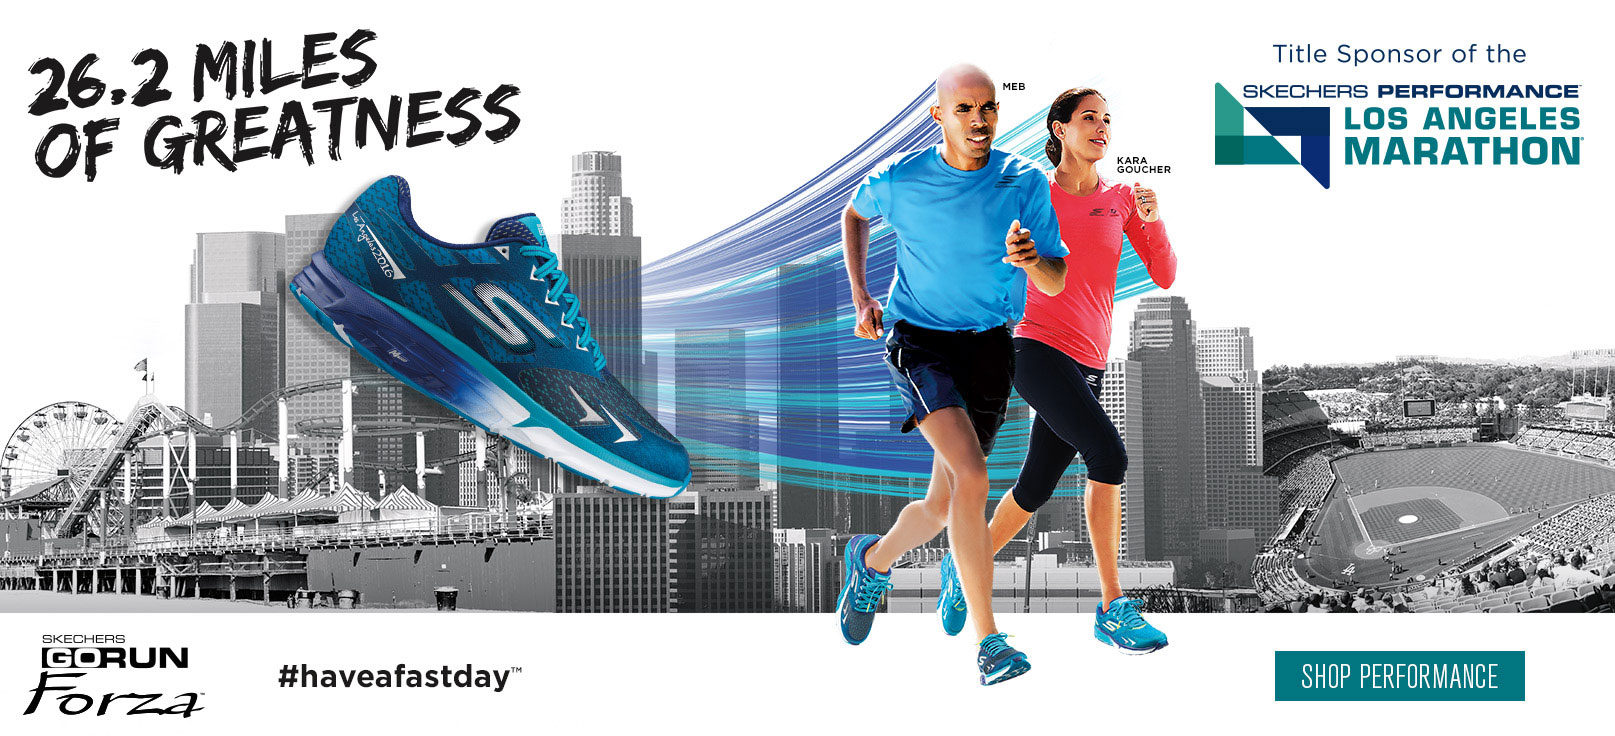 Shop for Performance shoes on skechers.com and keep posted for details about the Skechers Los Angeles Marathon